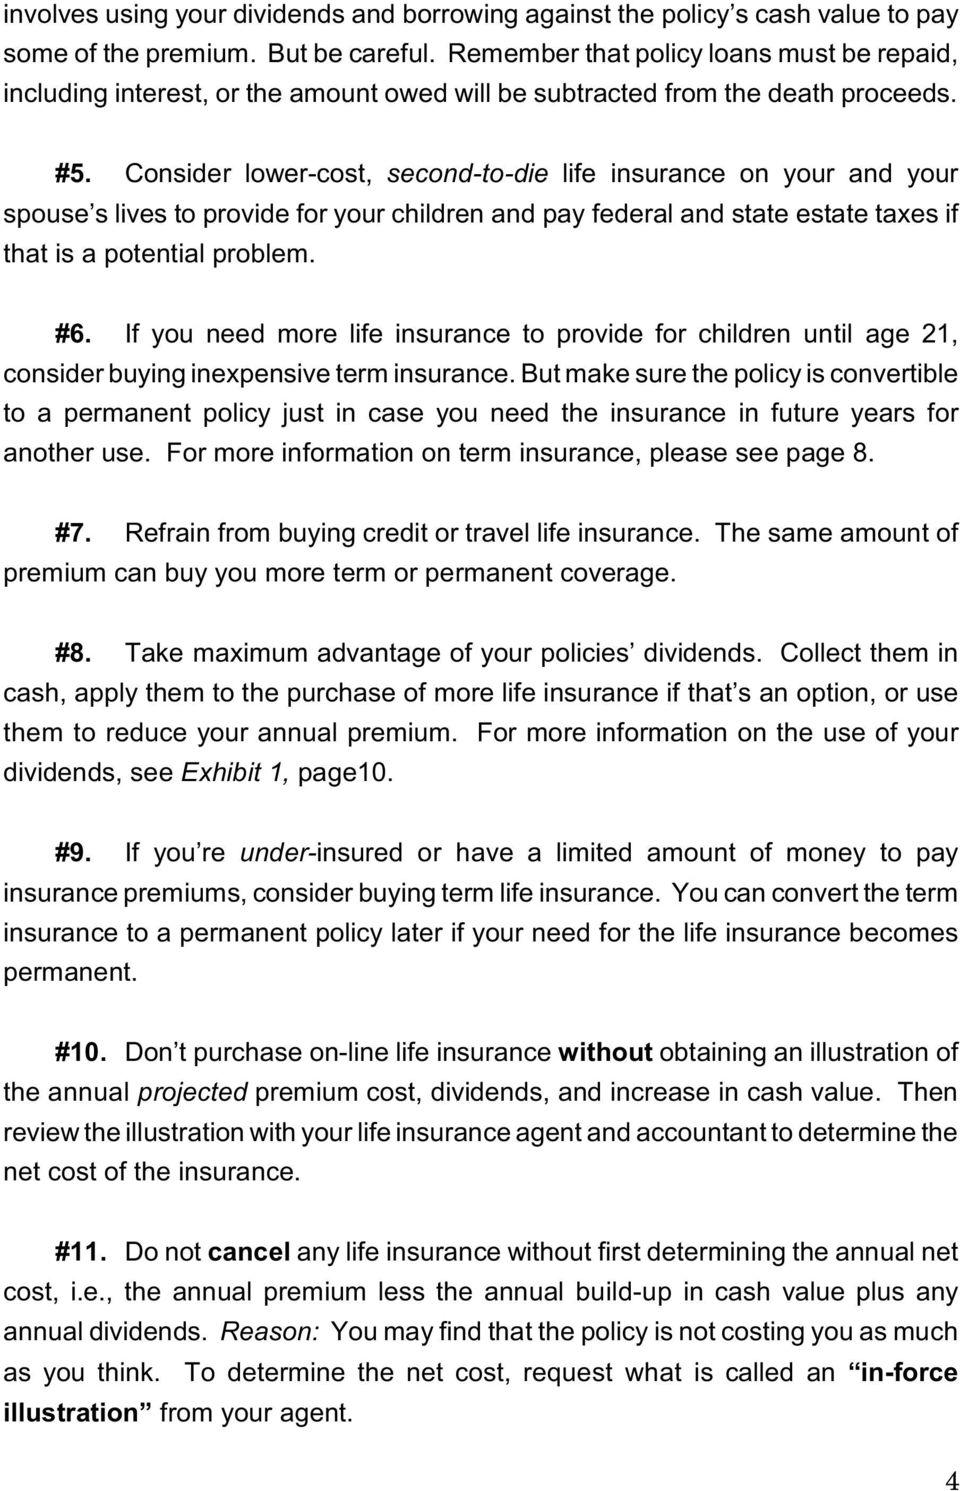 Consider lower-cost, second-to-die life insurance on your and your spouse s lives to provide for your children and pay federal and state estate taxes if that is a potential problem. #6.